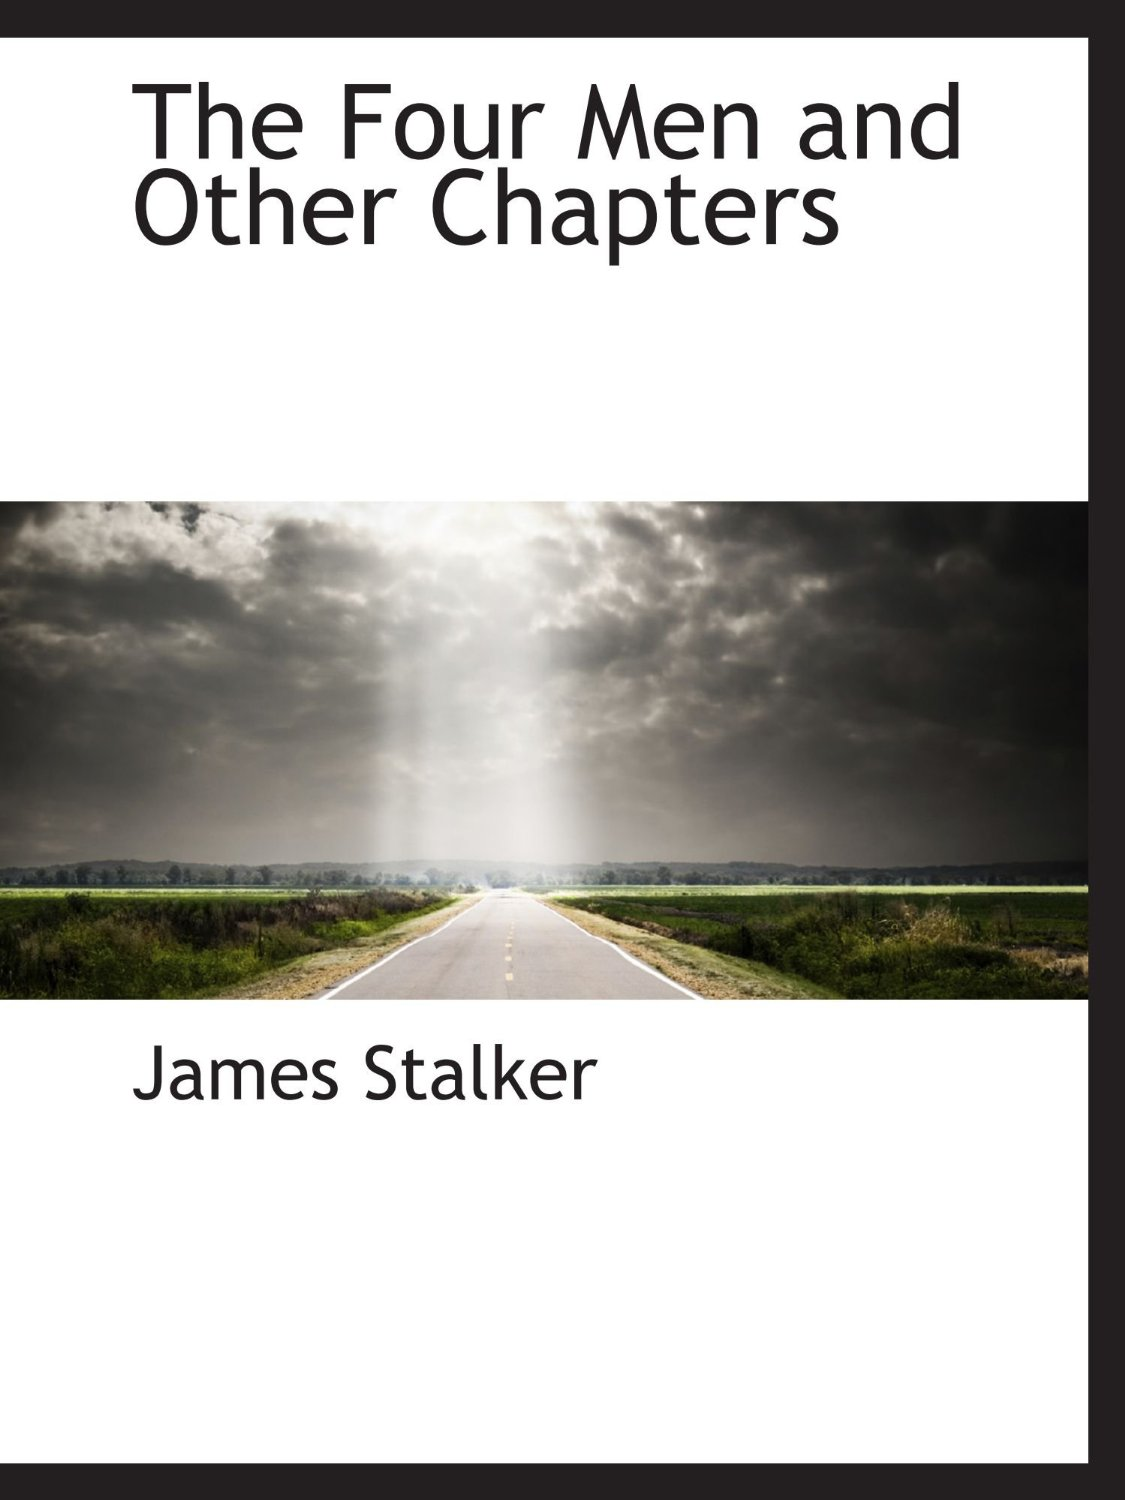 James Stalker-The Four Men And Other Chapters-